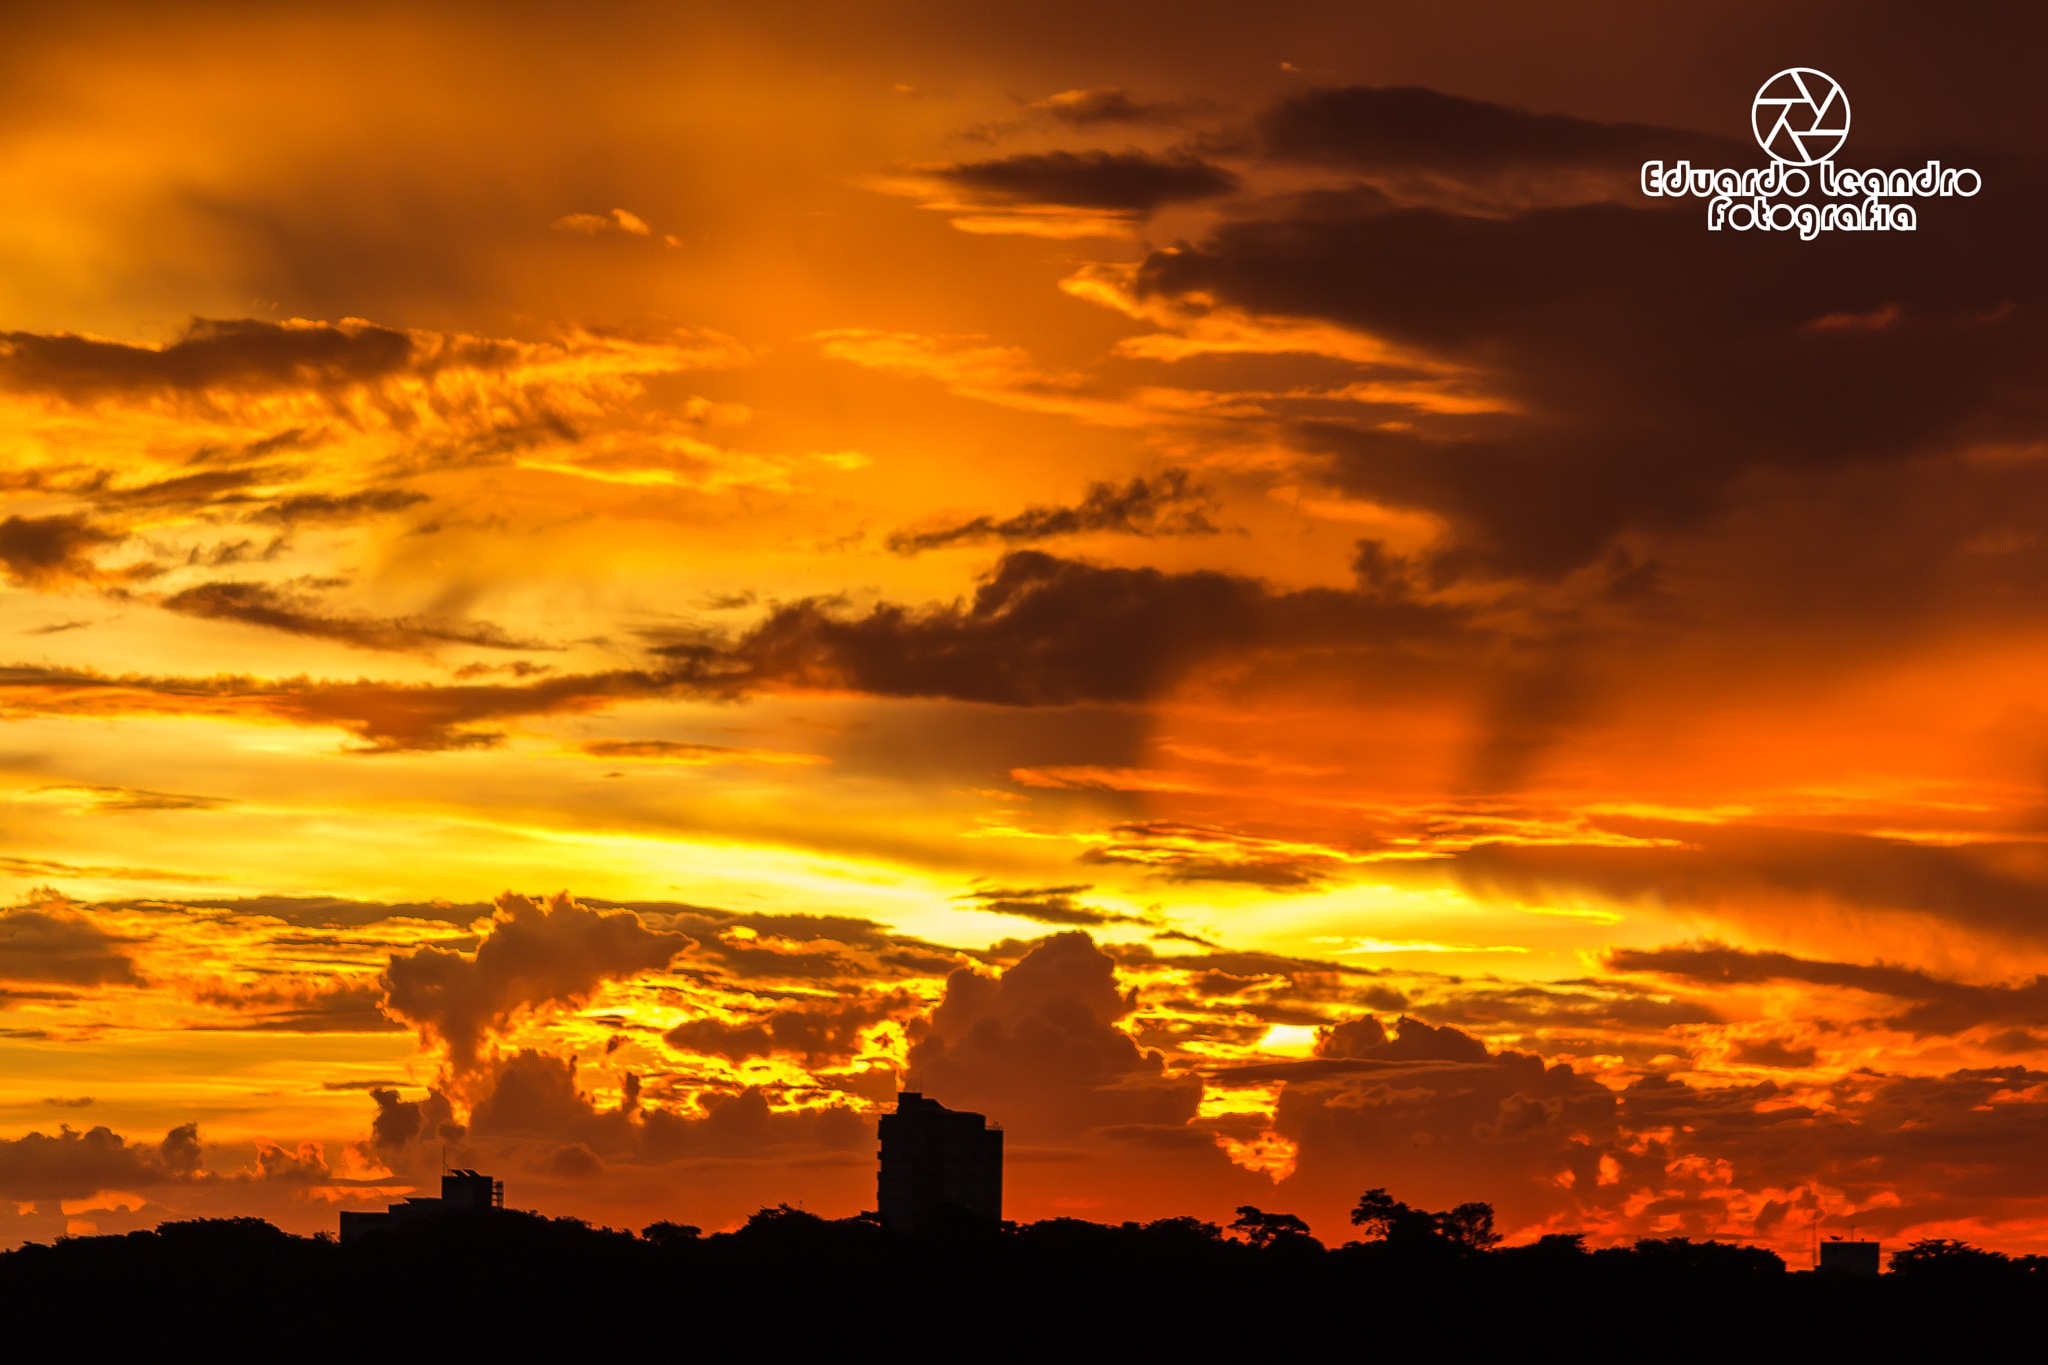 Sunset in the city by Eduardo Leandro